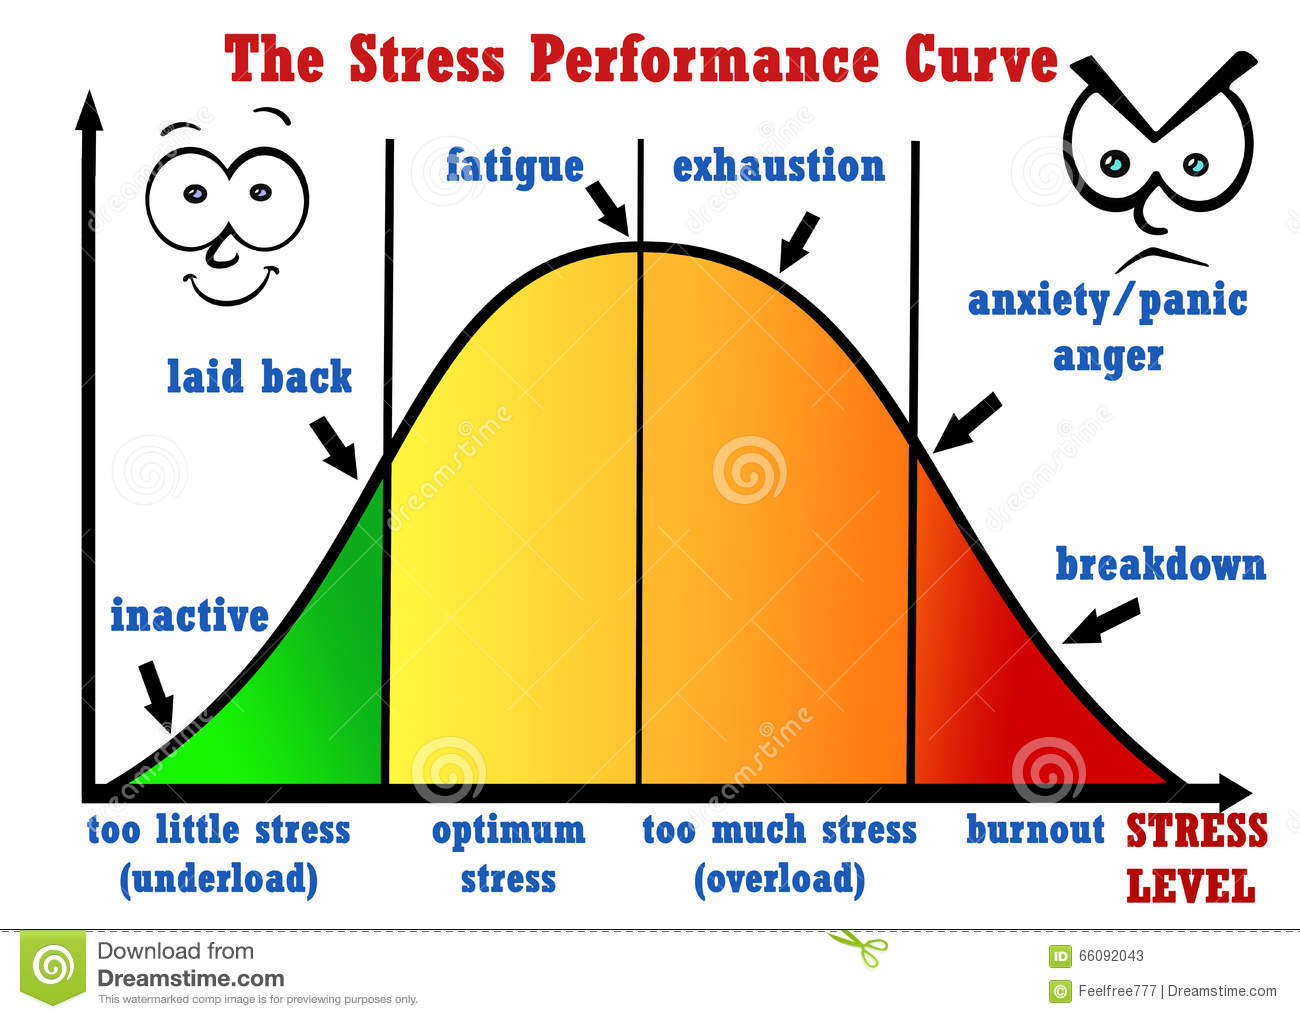 stress-performance-curve-very-high-hand-drawing-illustration-picture-you-can-see-details-great-picture-all-66092043.jpg